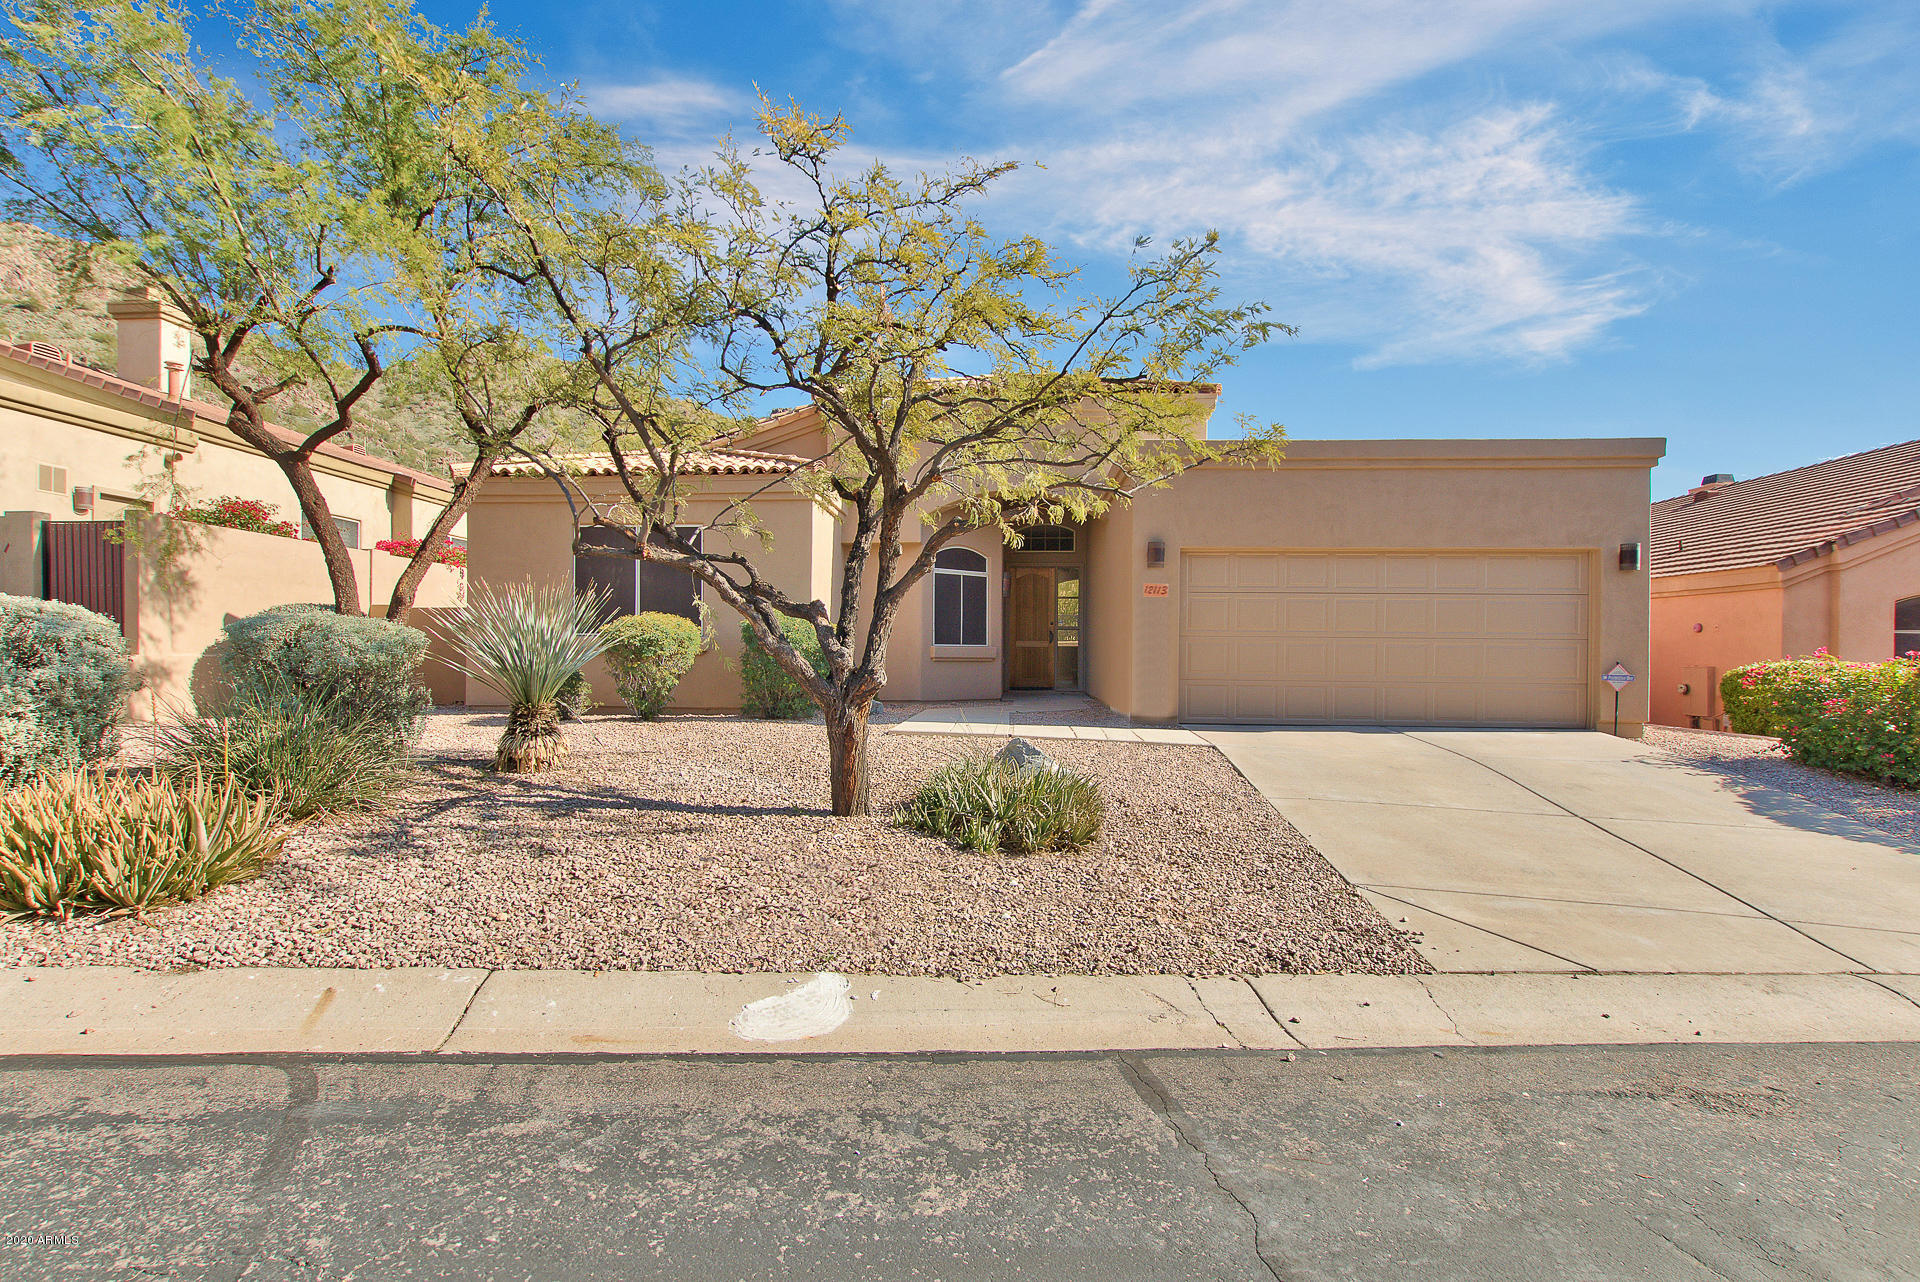 Photo of 12113 N 138TH Way, Scottsdale, AZ 85259